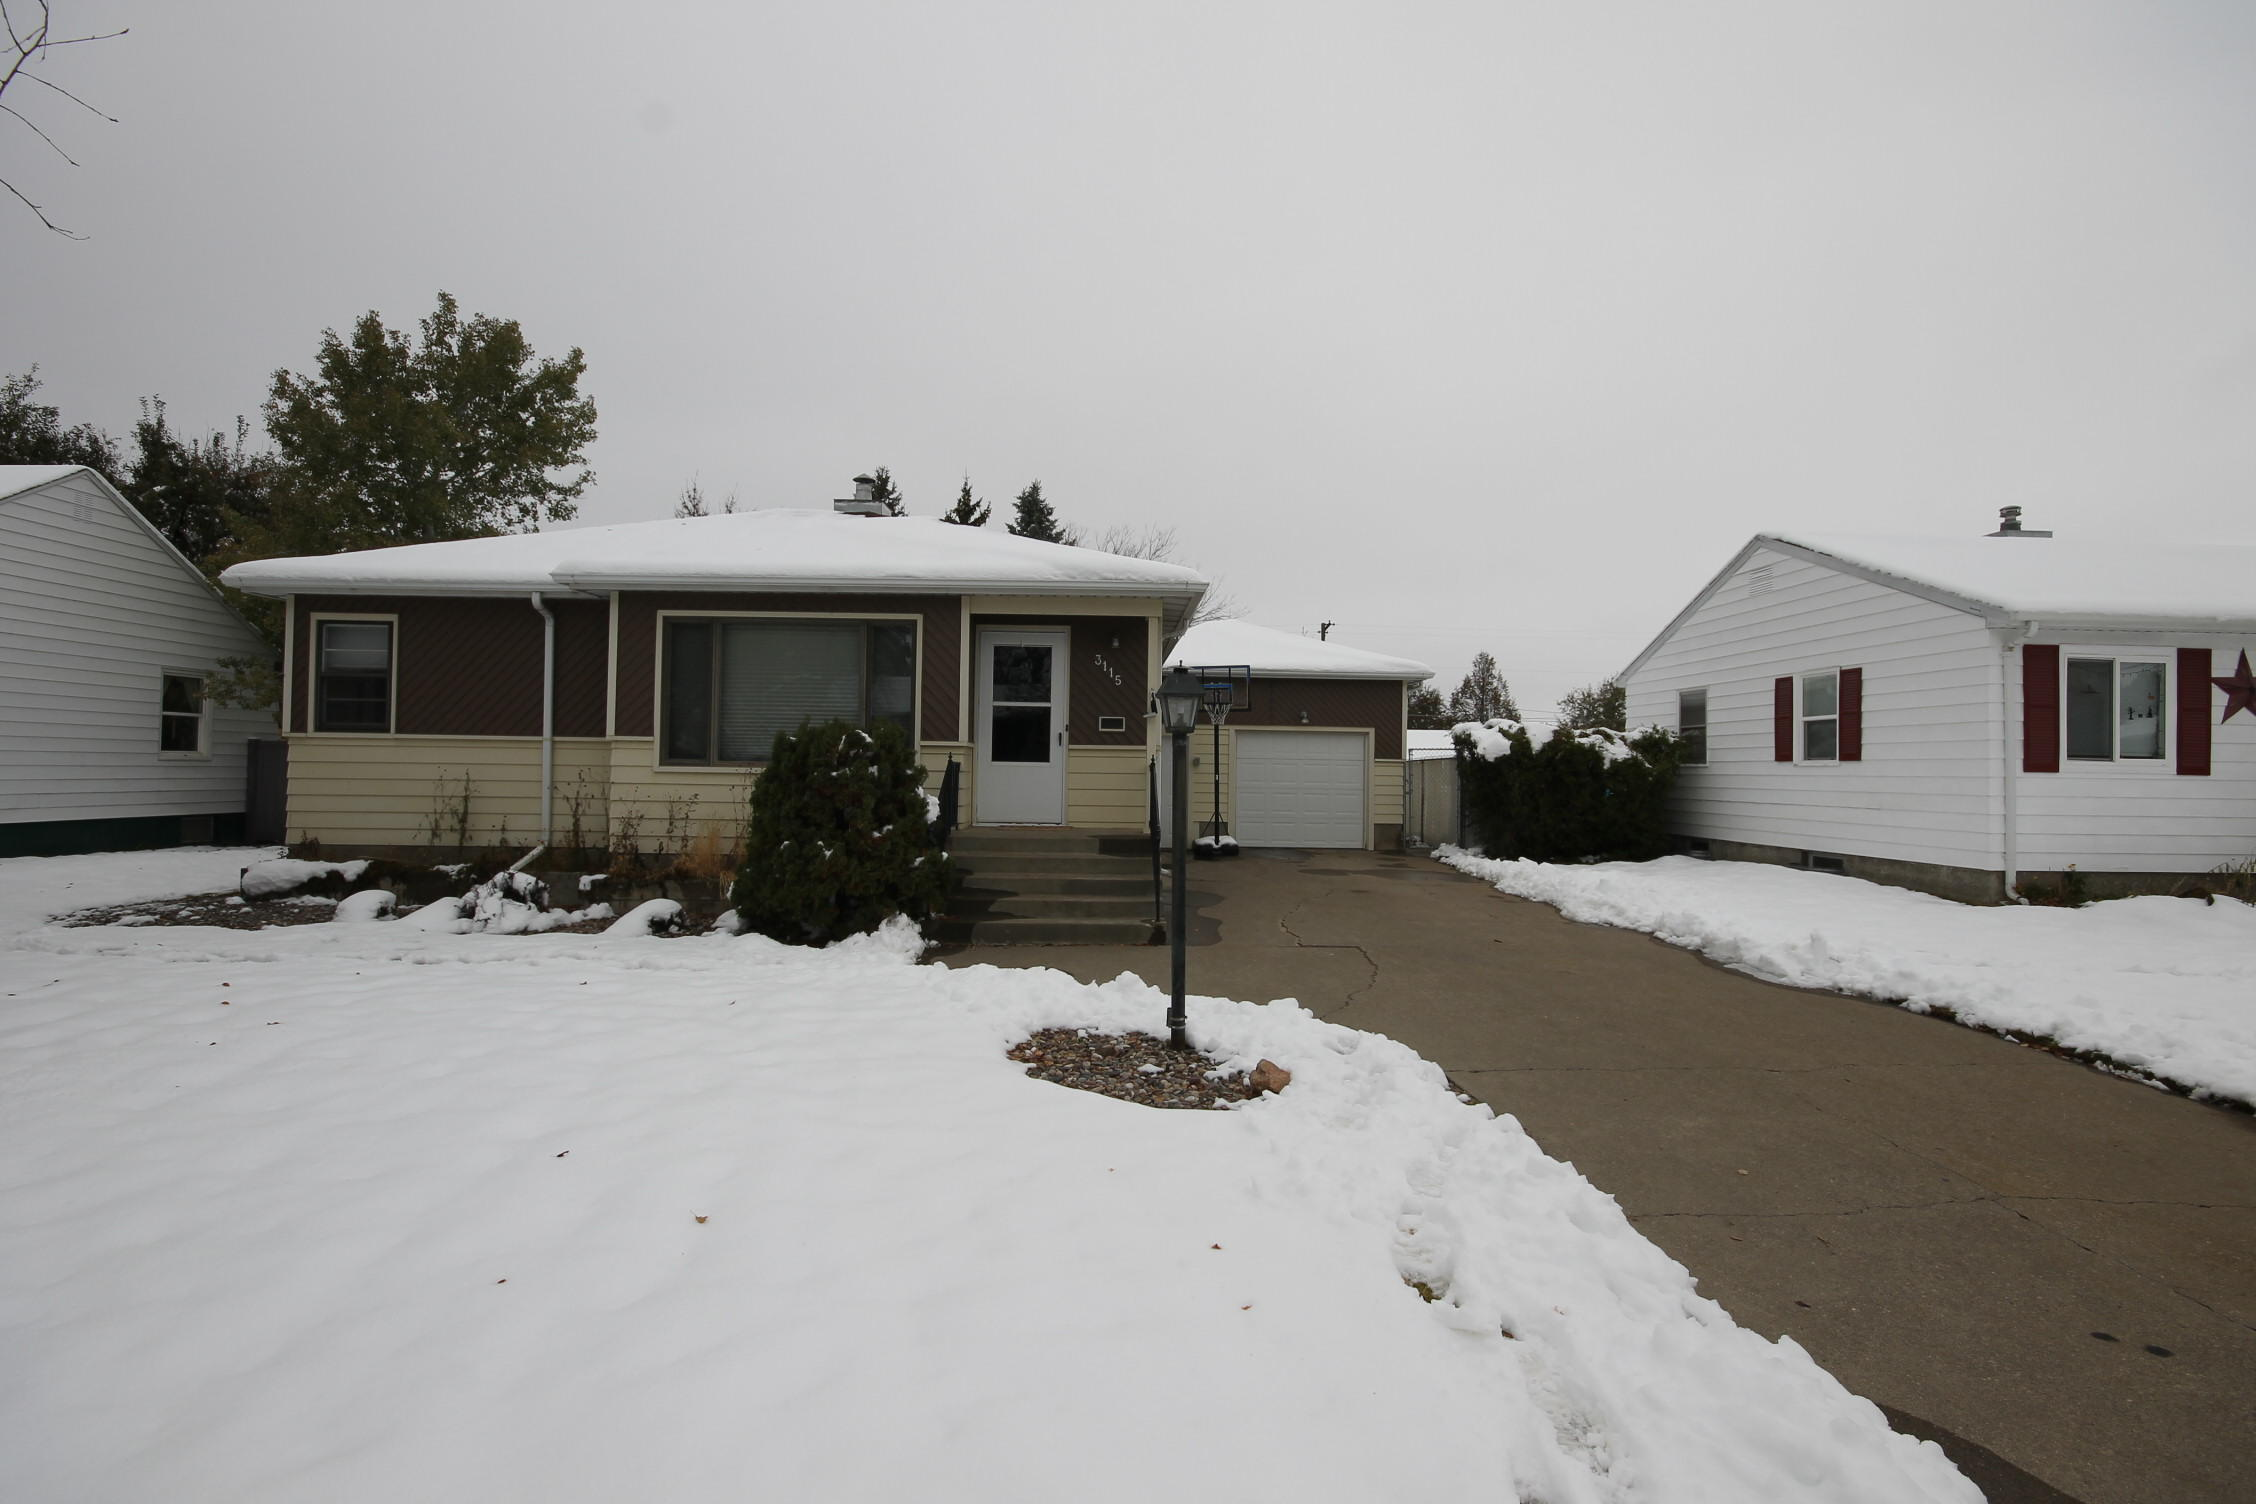 WONDERFUL remodeled east end home with new flooring, paint, newer counter tops, and newer appliances! New A/C unit, water heater, and furnace. New electrical service done in 2014. Shed with small garage door in backyard for extra storage. Turn key home ready for any buyer! Call Wyatt Gremaux at 406-750-5125, or your real estate professional.